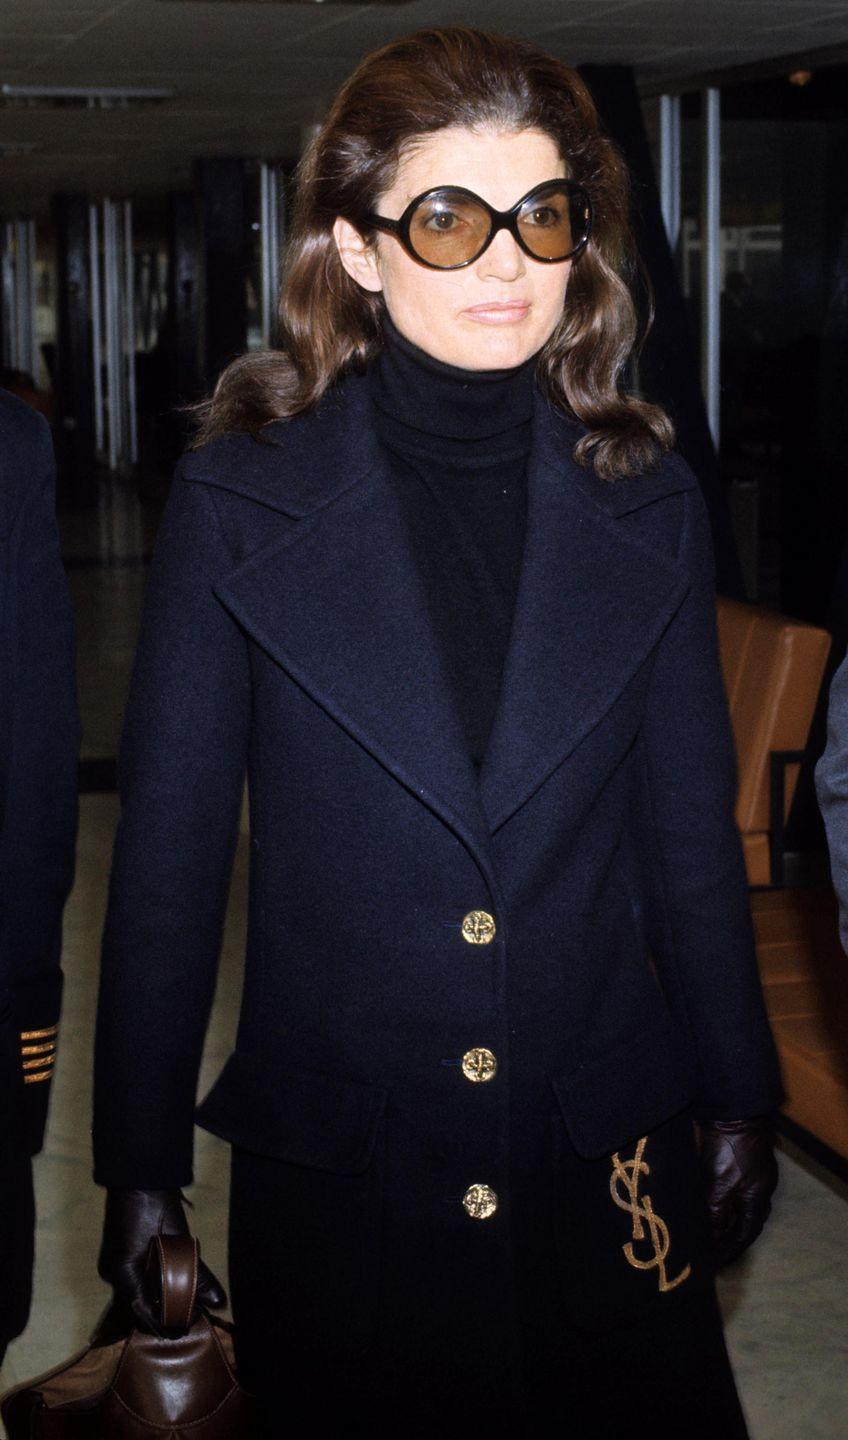 <p>Ready to board a flight at Heathrow Airport, Jackie is the perfect example of 1970s elevated style: a navy turtleneck and wool double-breasted coat paired with sunglasses and leather gloves and handbag all sing together.<br></p>